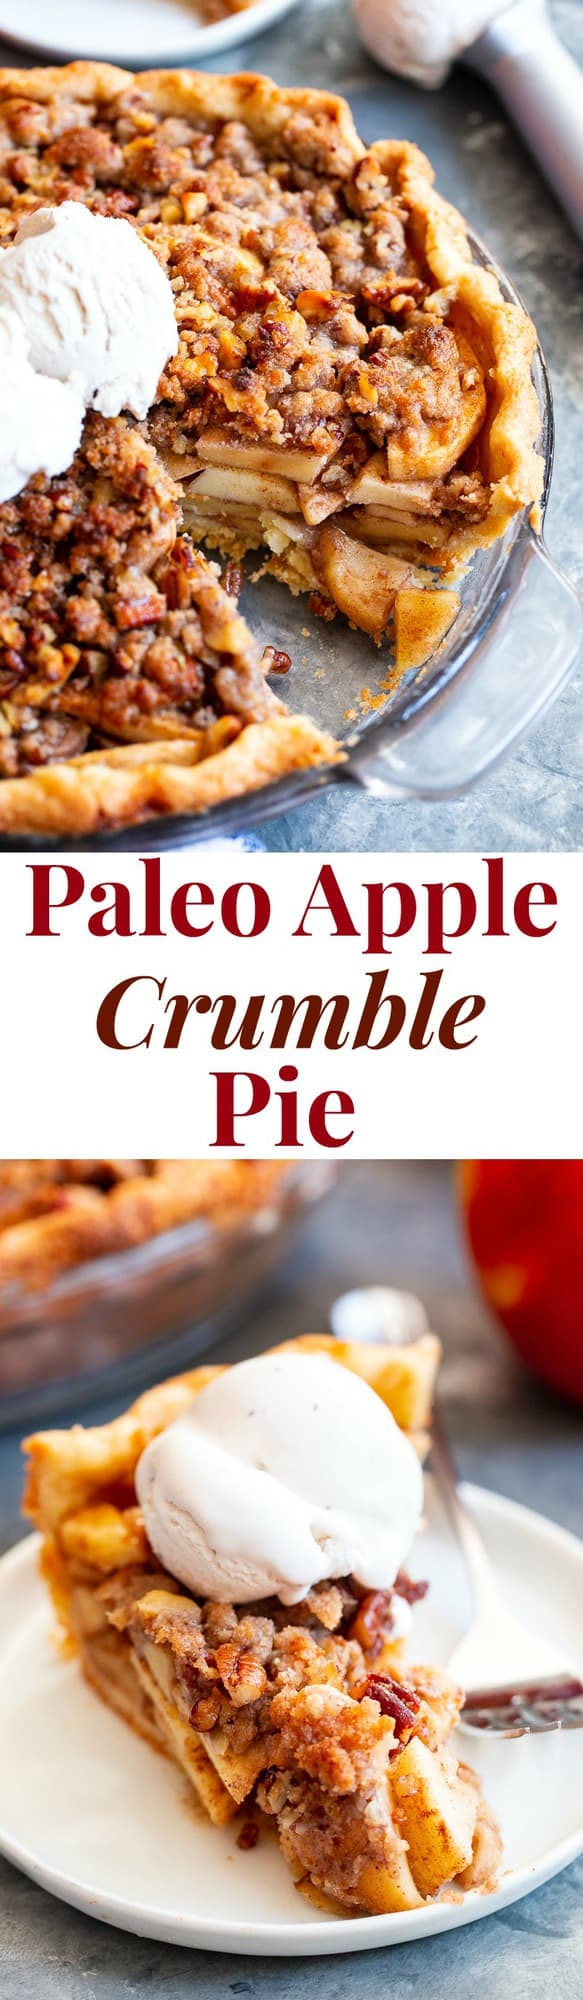 This gluten-free and Paleo Apple Crumble Pie starts with an easy grain free pie crust filling with gooey, juicy warmly spiced apples and a sweet crunchy crumble topping. It's a showstopper for the holiday season and a fun anytime healthier dessert!